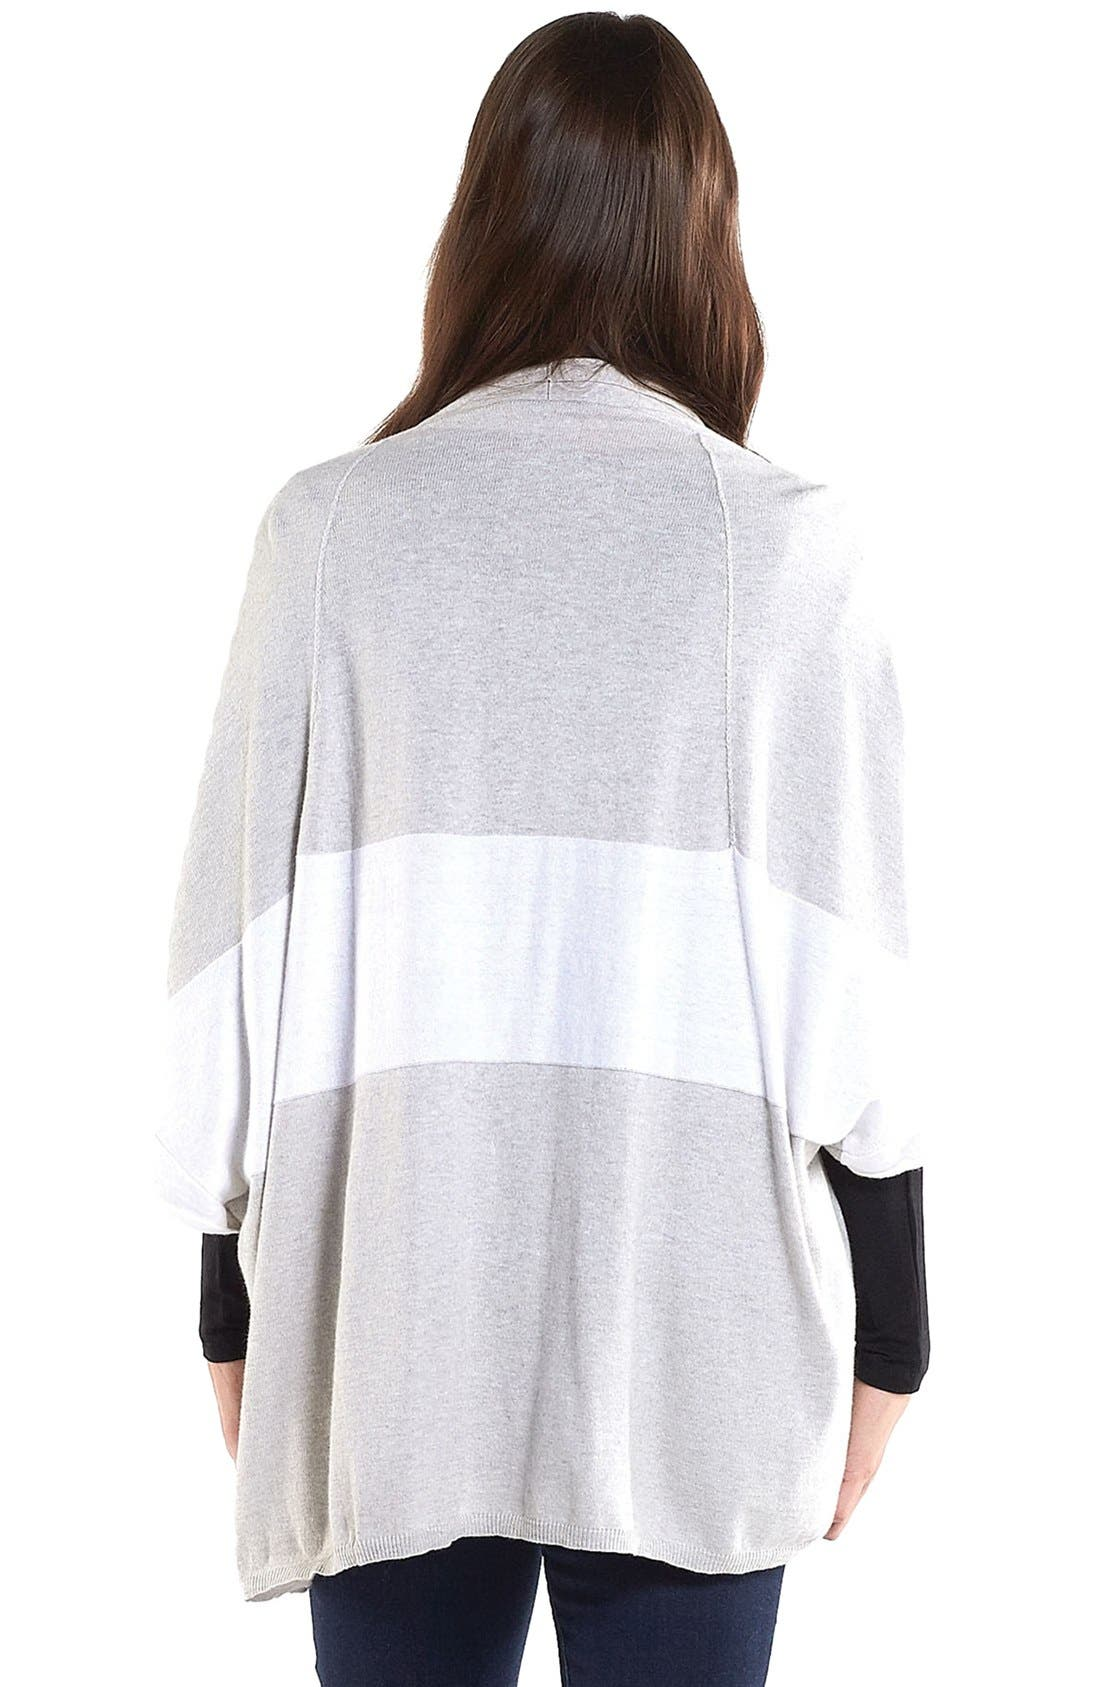 'Harlyn' Cotton & Cashmere Maternity Wrap Cardigan,                             Alternate thumbnail 3, color,                             HEATHER GREY/ WHITE